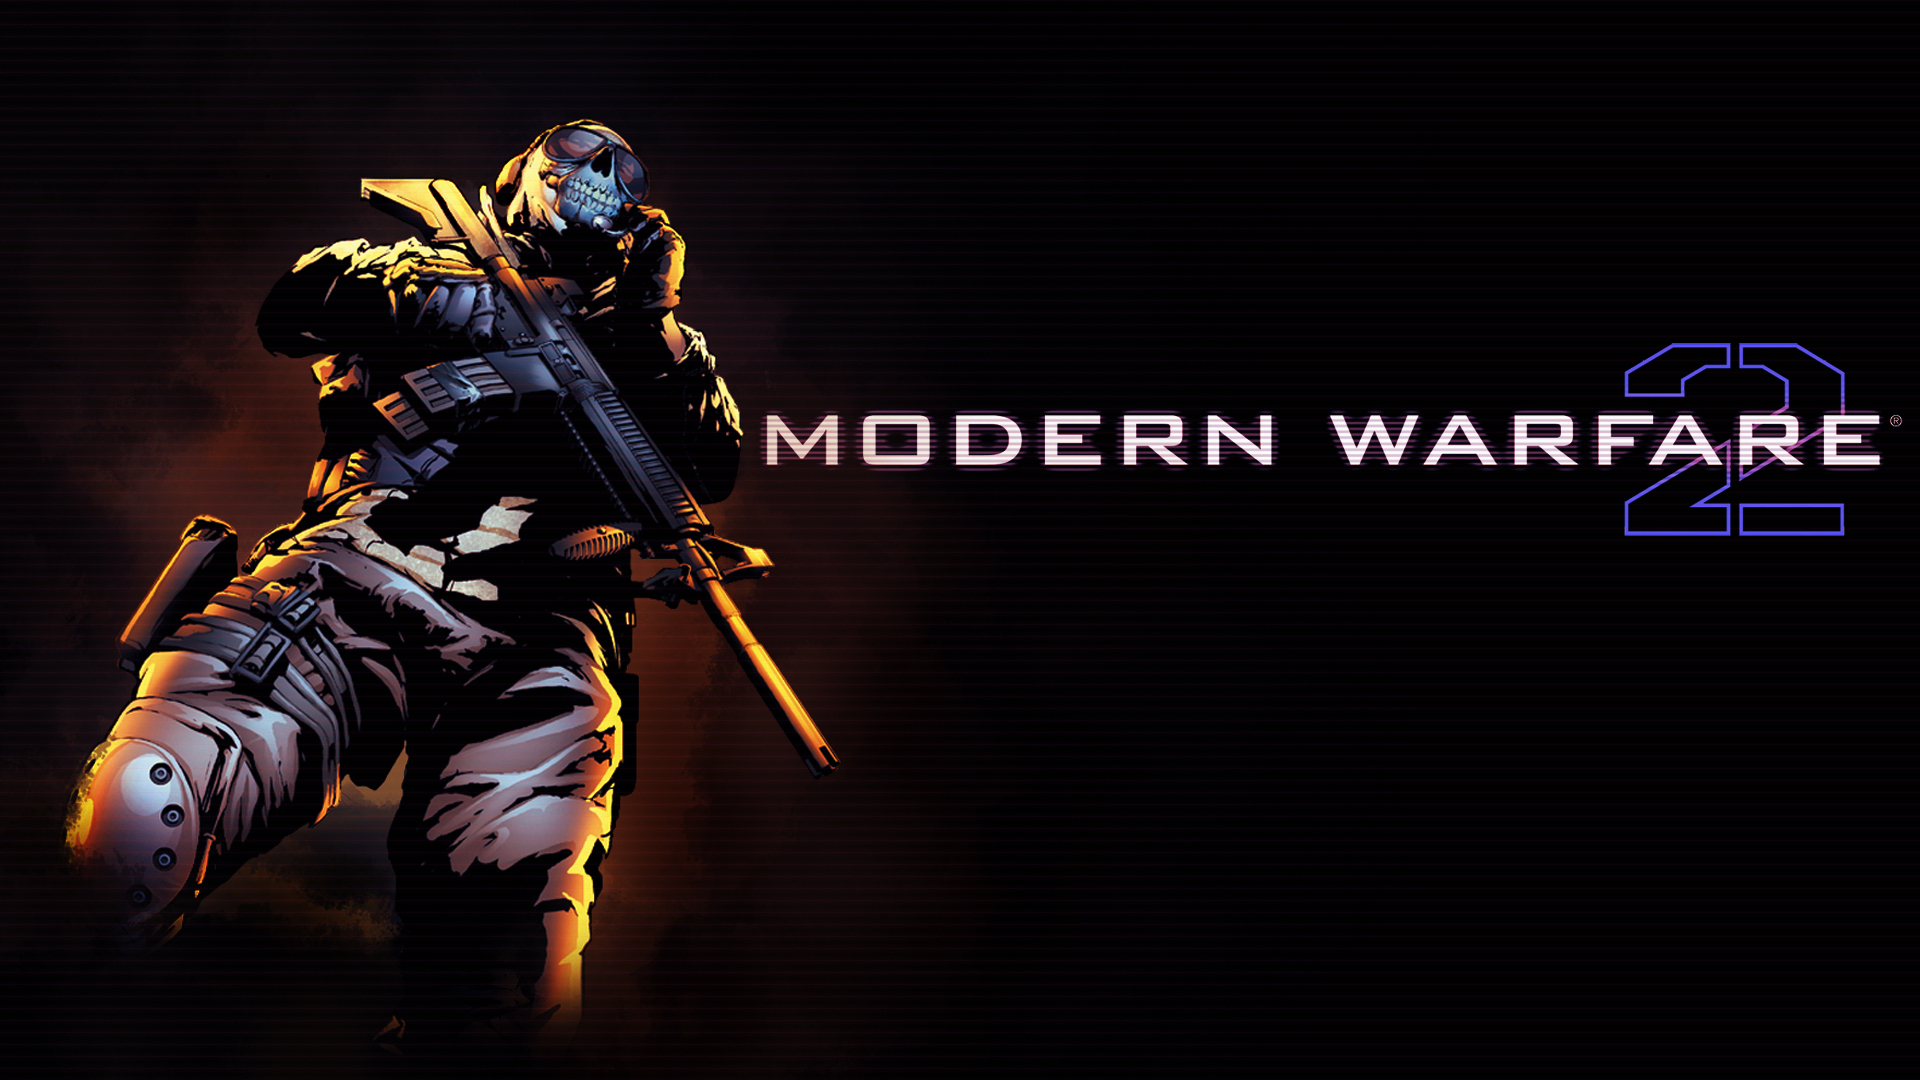 Арт к игре Call of Duty: Modern Warfare 2